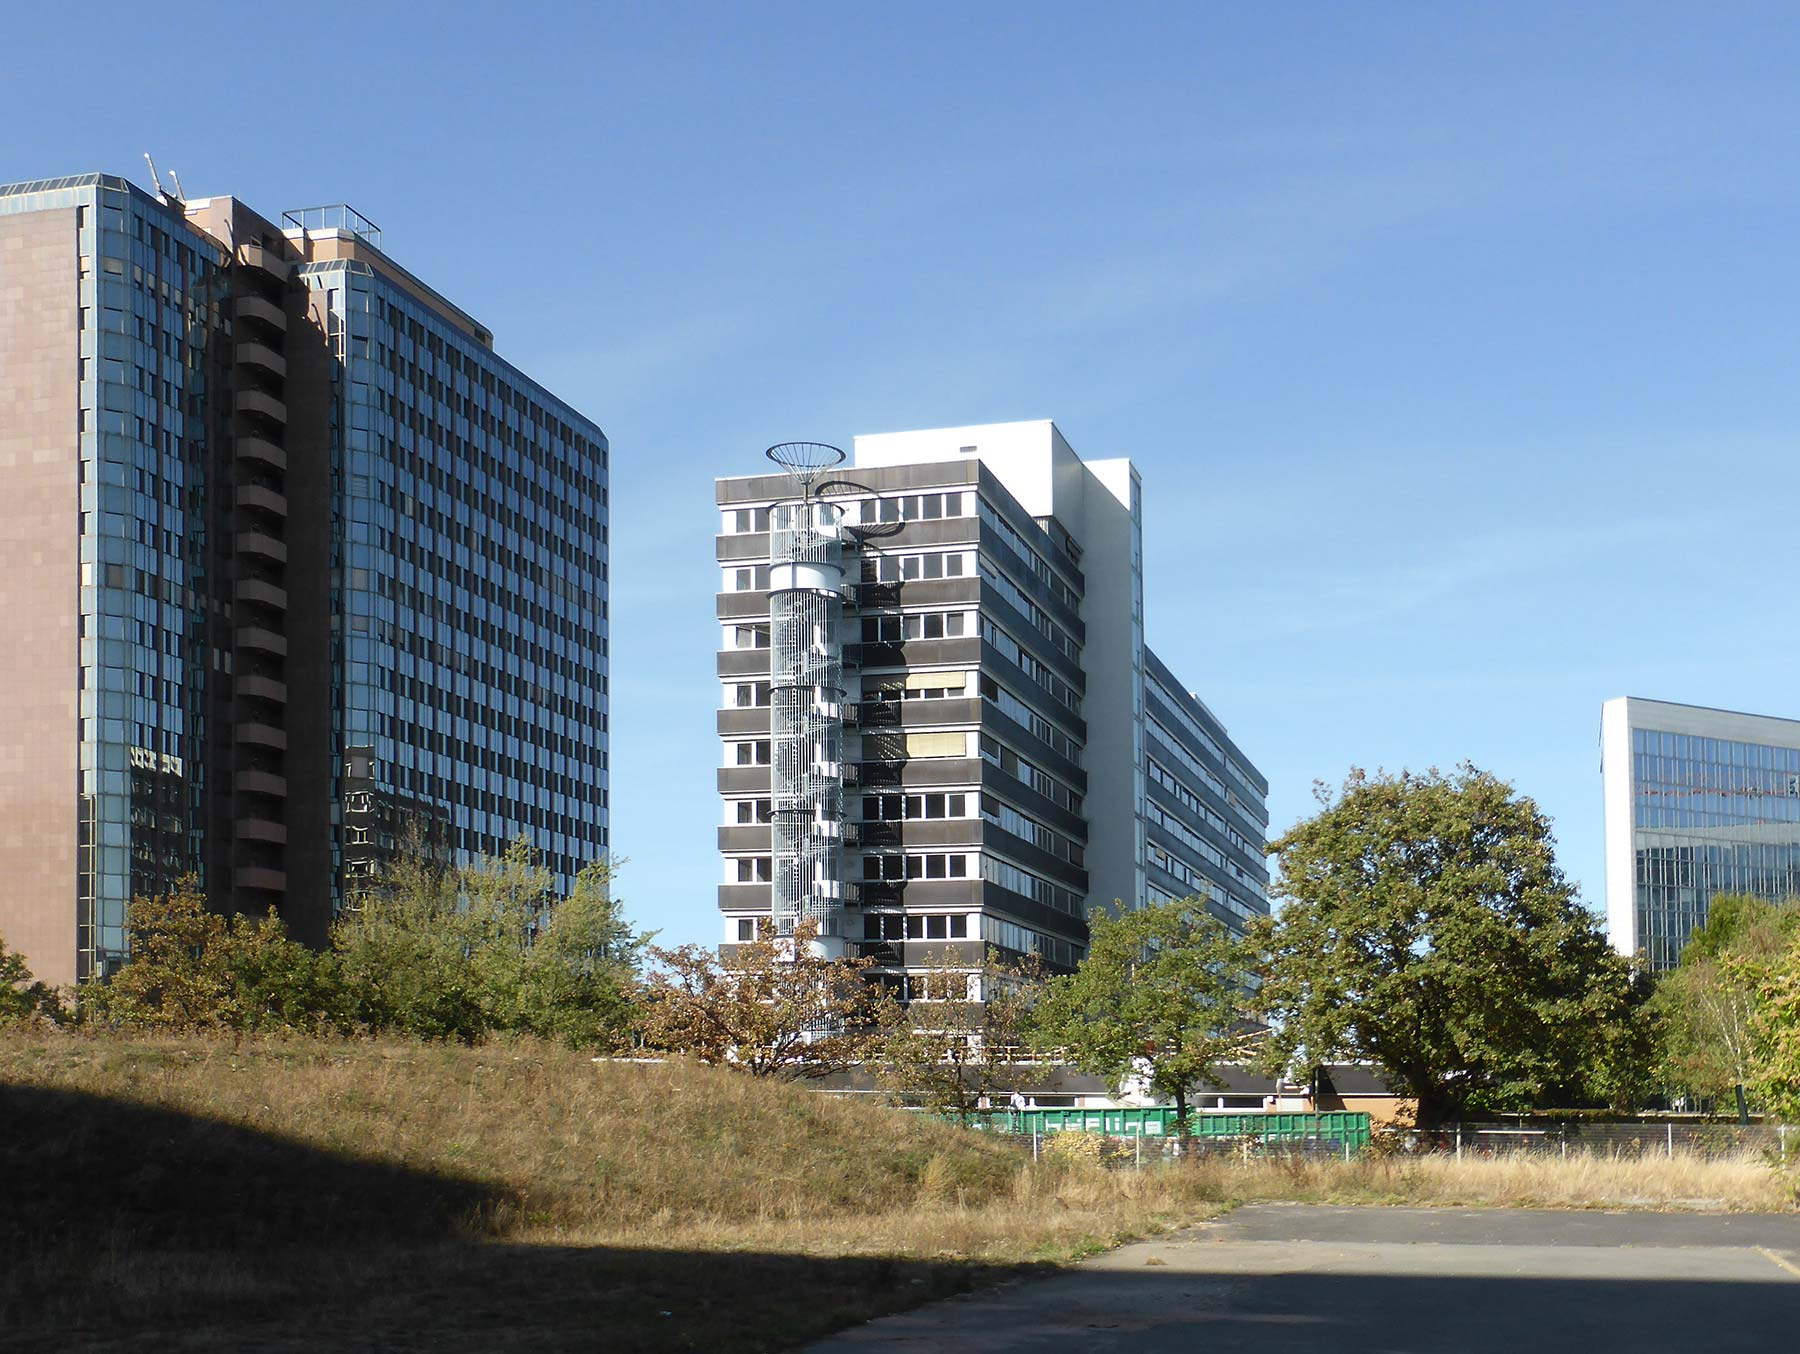 Lyoner Strasse 11 in Frankfurt, Germany - dormitory for hotel employees - furnished apartments